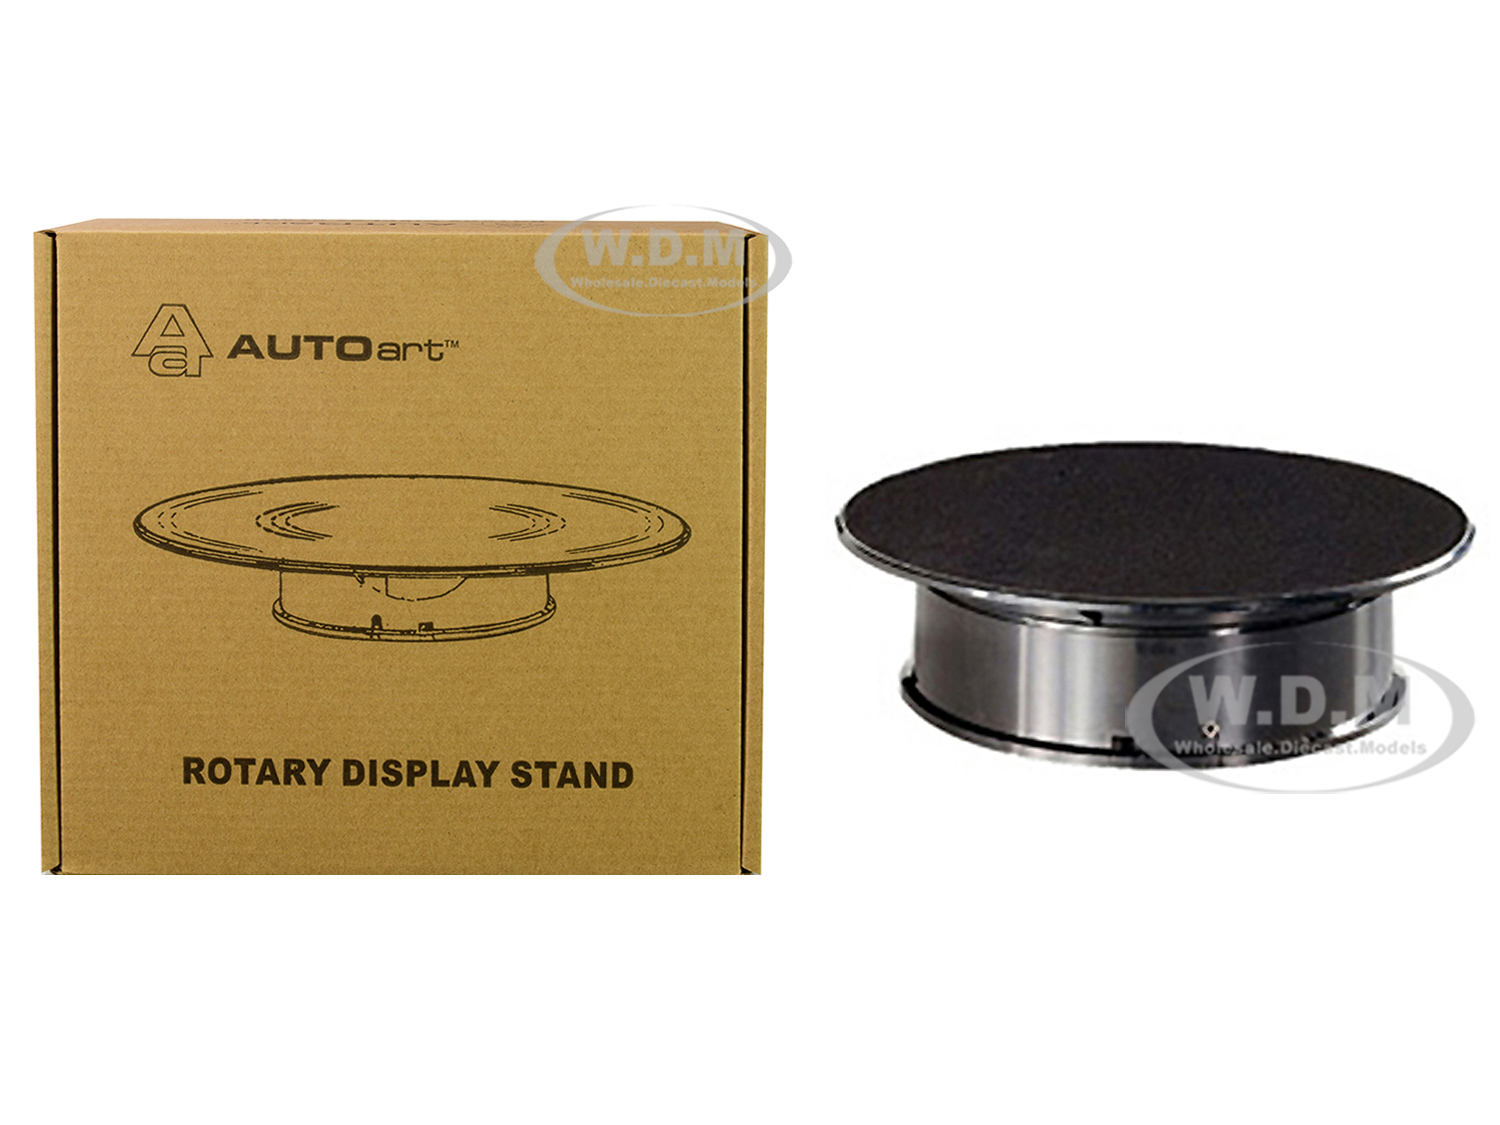 Rotary Display Turntable Stand Small 8 Inches with Black Top for 1/64 1/43 1/32 1/24 Scale Models by Autoart